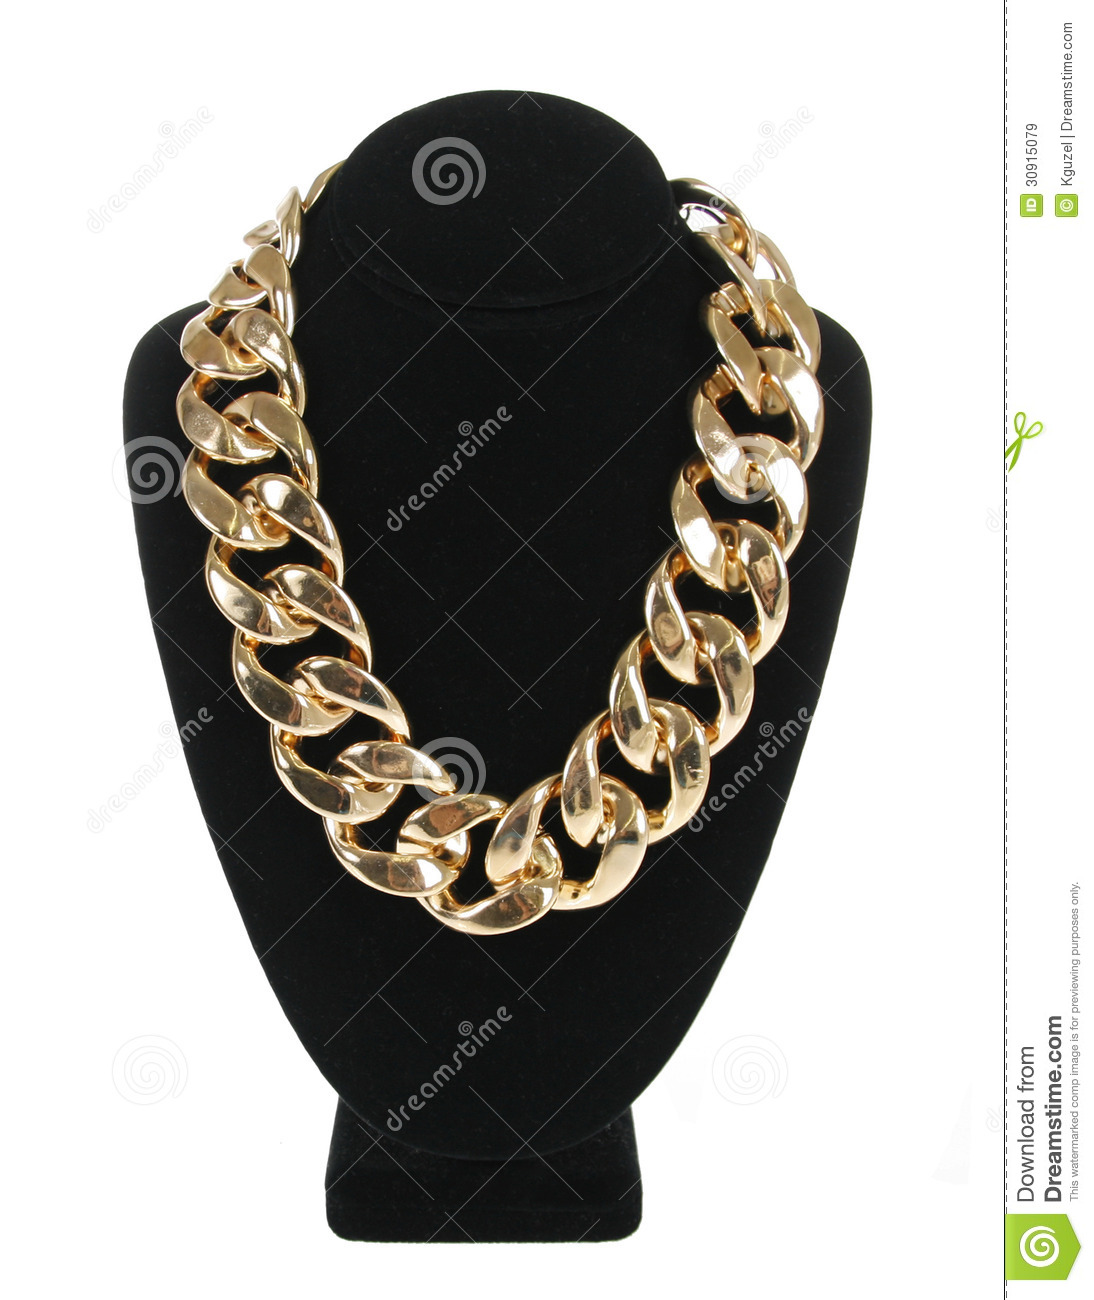 Gold necklace chain on velvet stand isolated on white, fashion jewelry